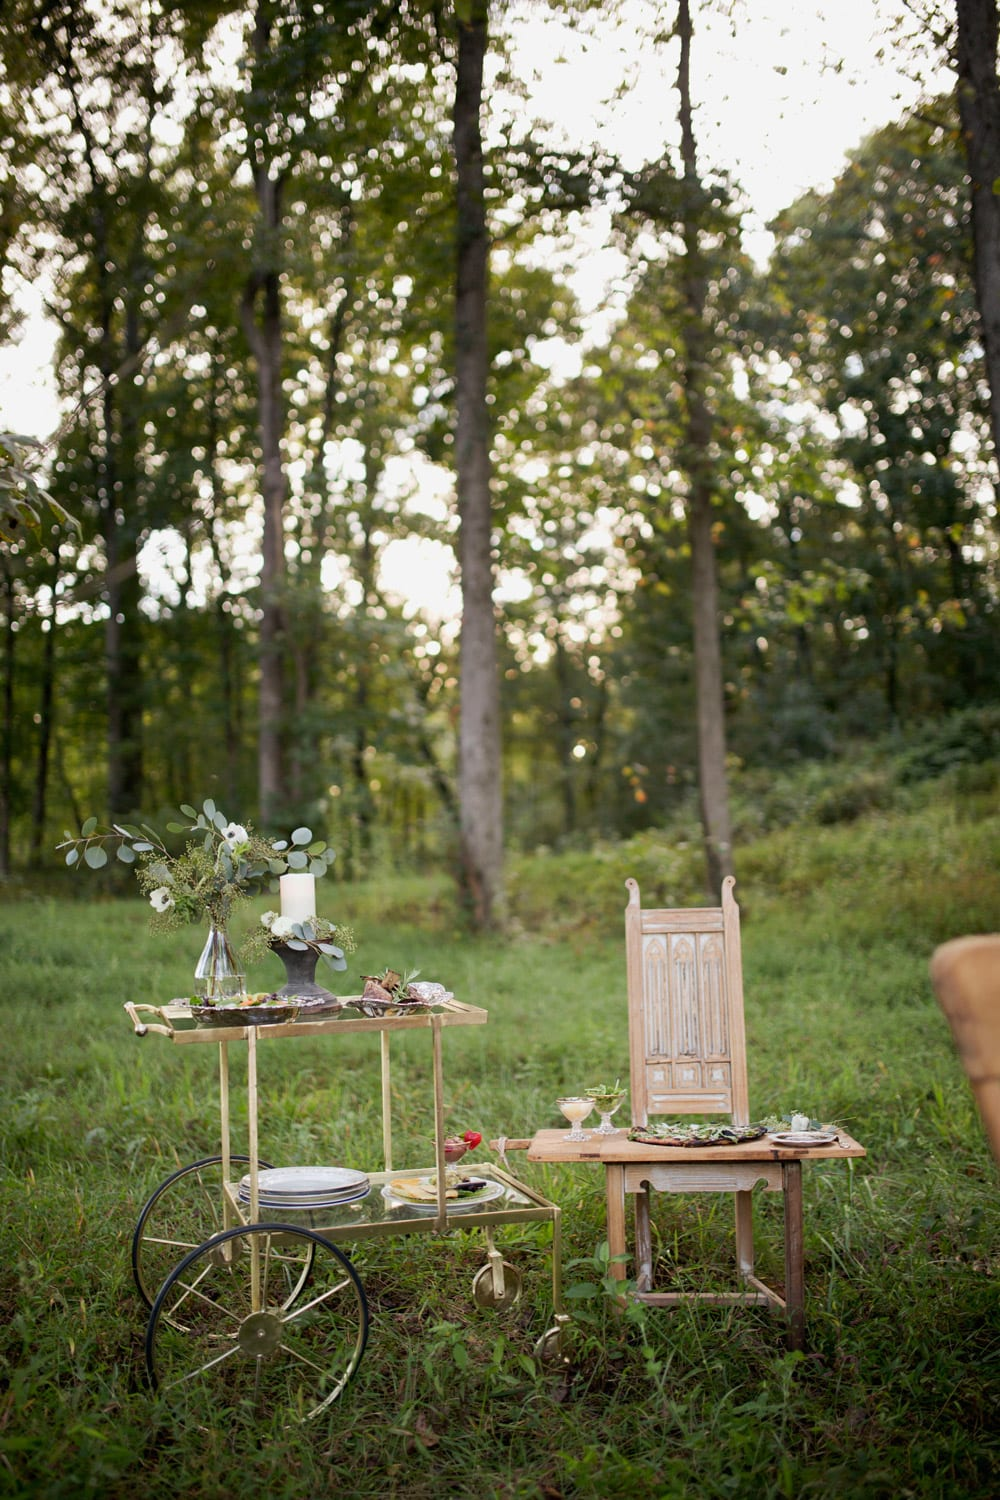 Glass cart and chair in the woods